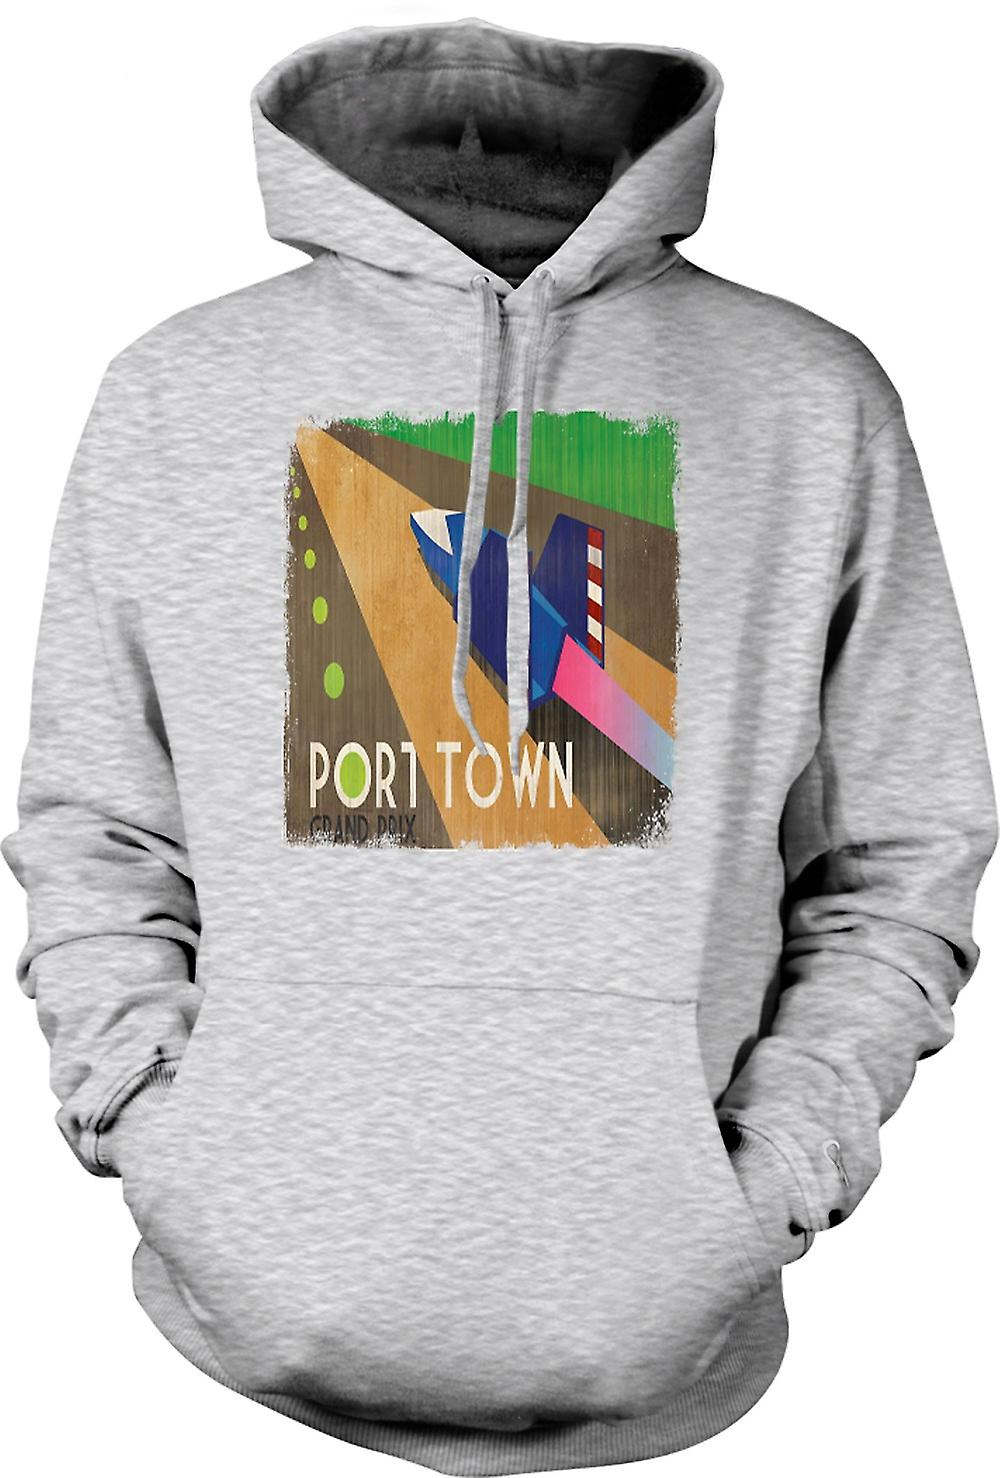 Mens Hoodie - F Zéro Port Town - Grand Prix - Gamer